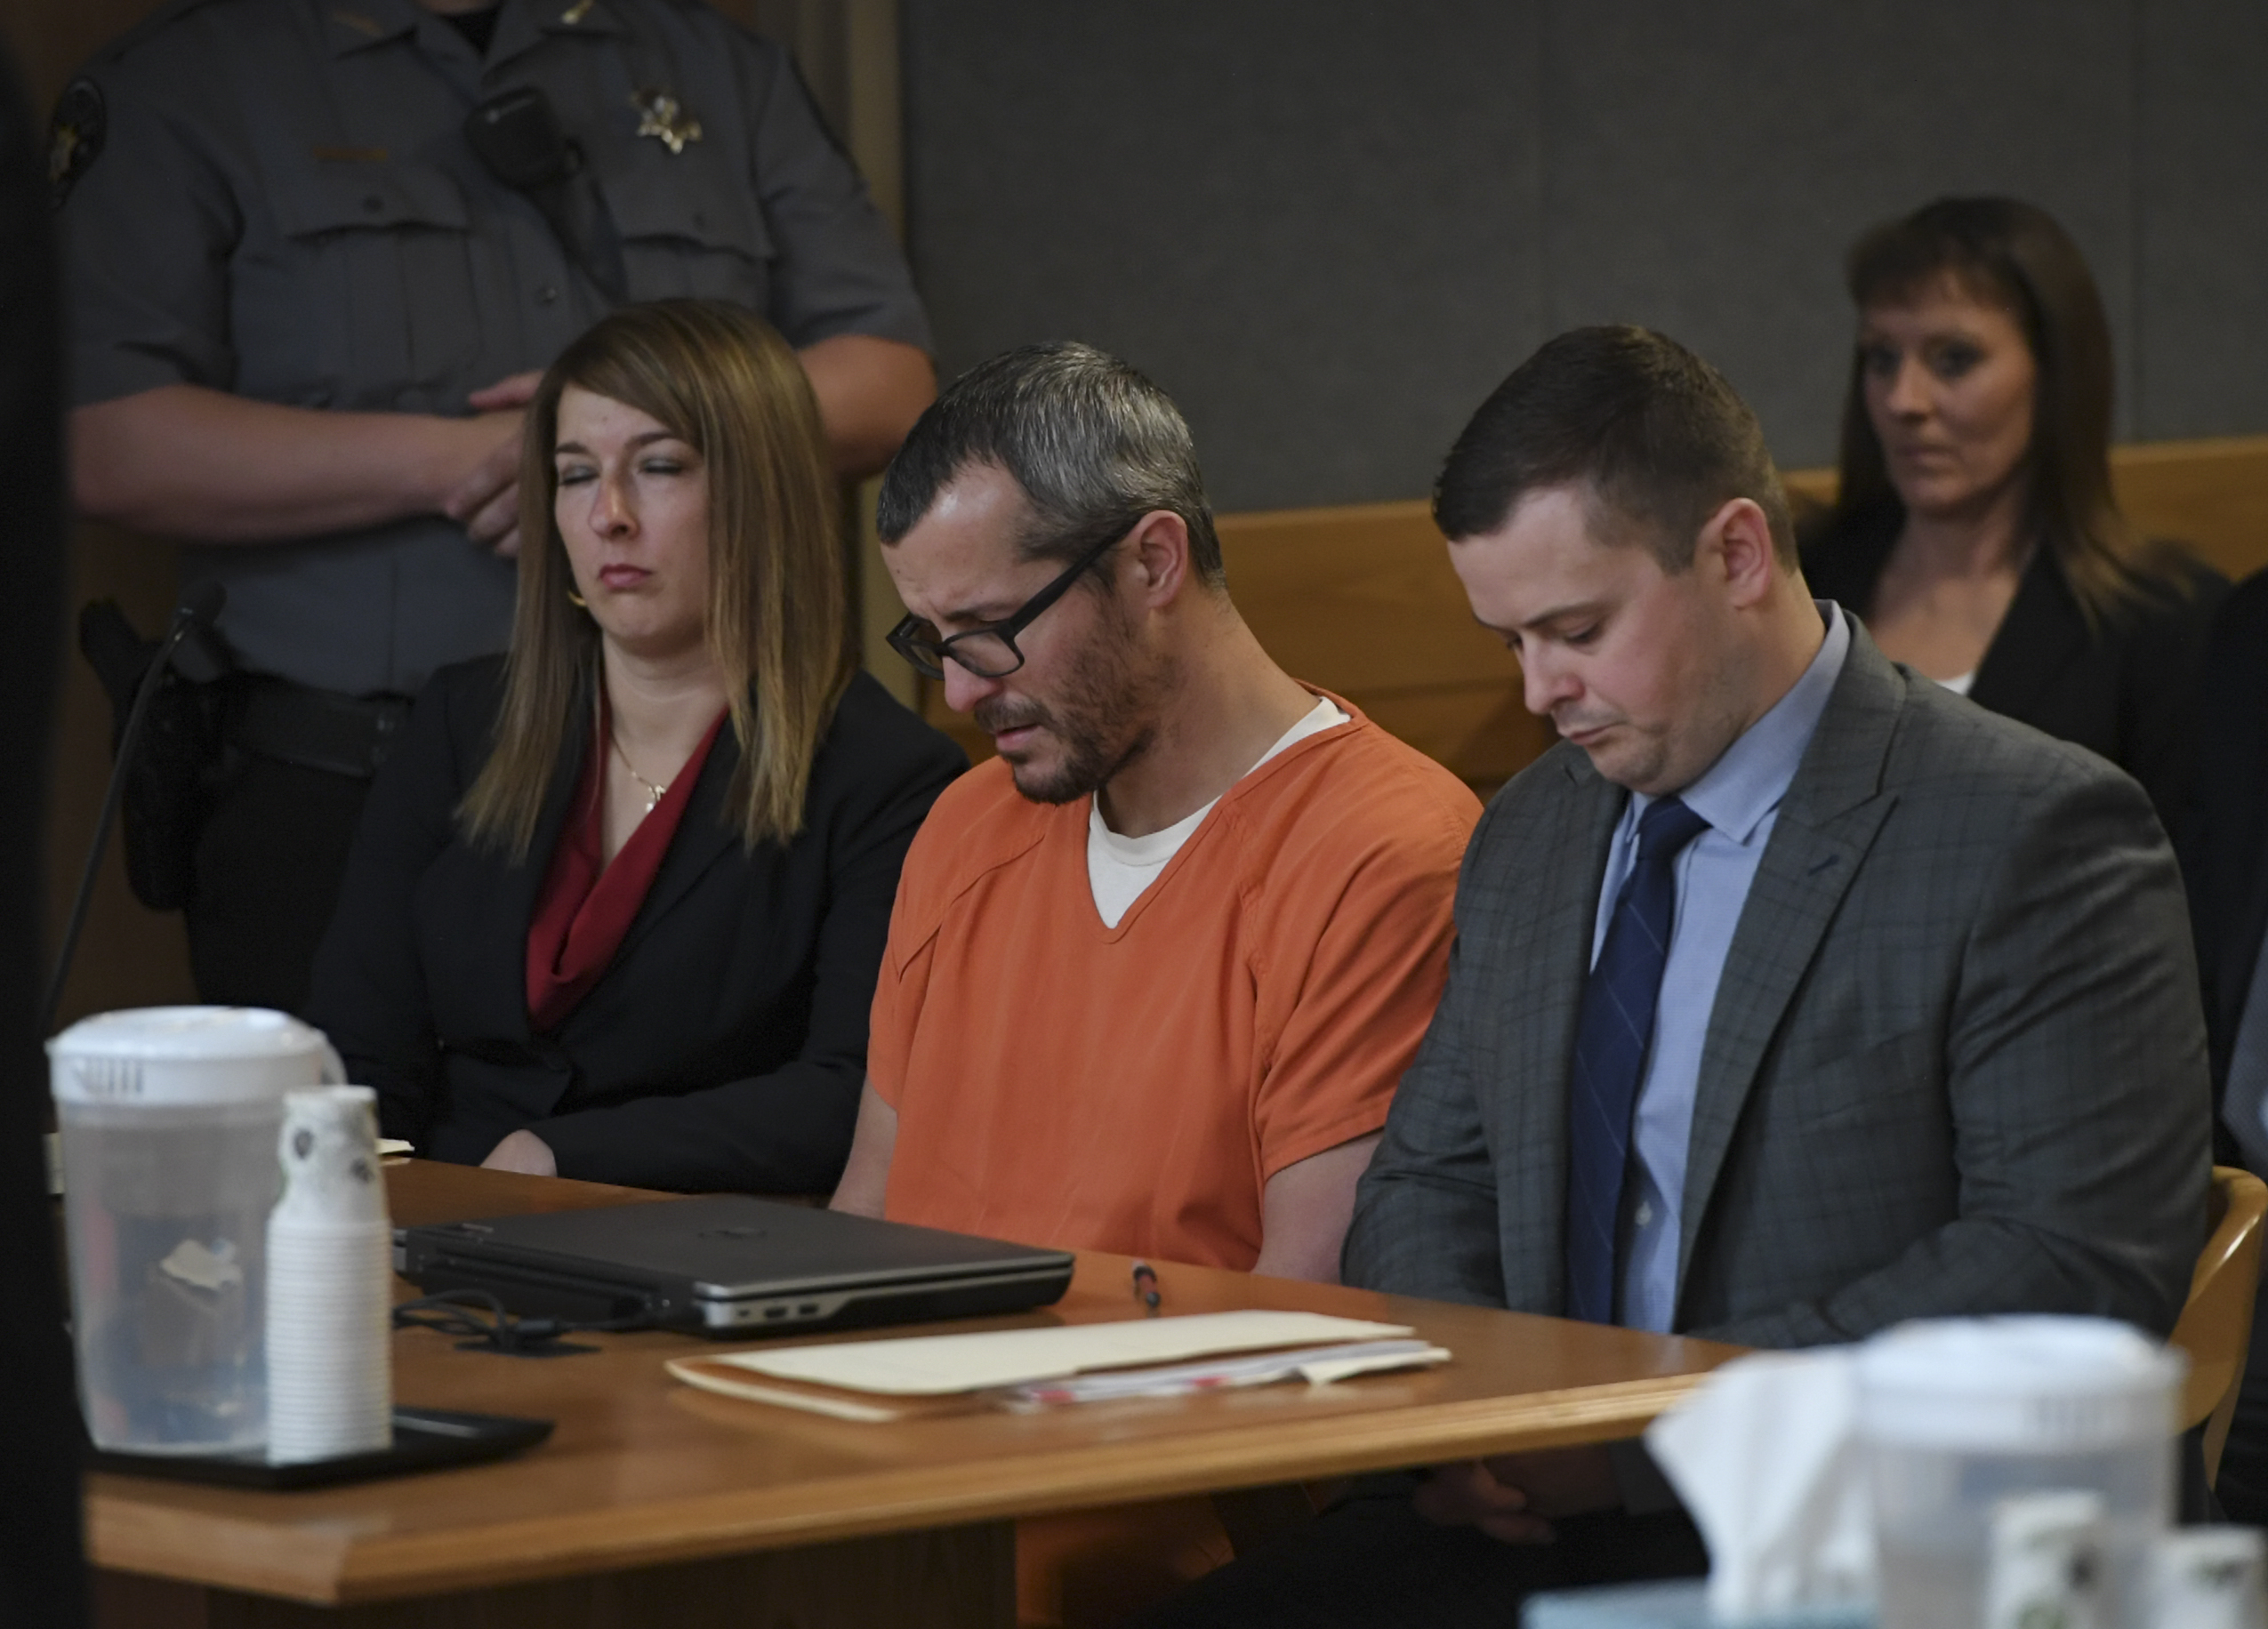 Chris Watts sits in court for his sentencing hearing at the Weld County Courthouse on November 19, 2018, in Greeley, Colorado (Source: RJ Sangosti/The Denver Post via Getty Images)